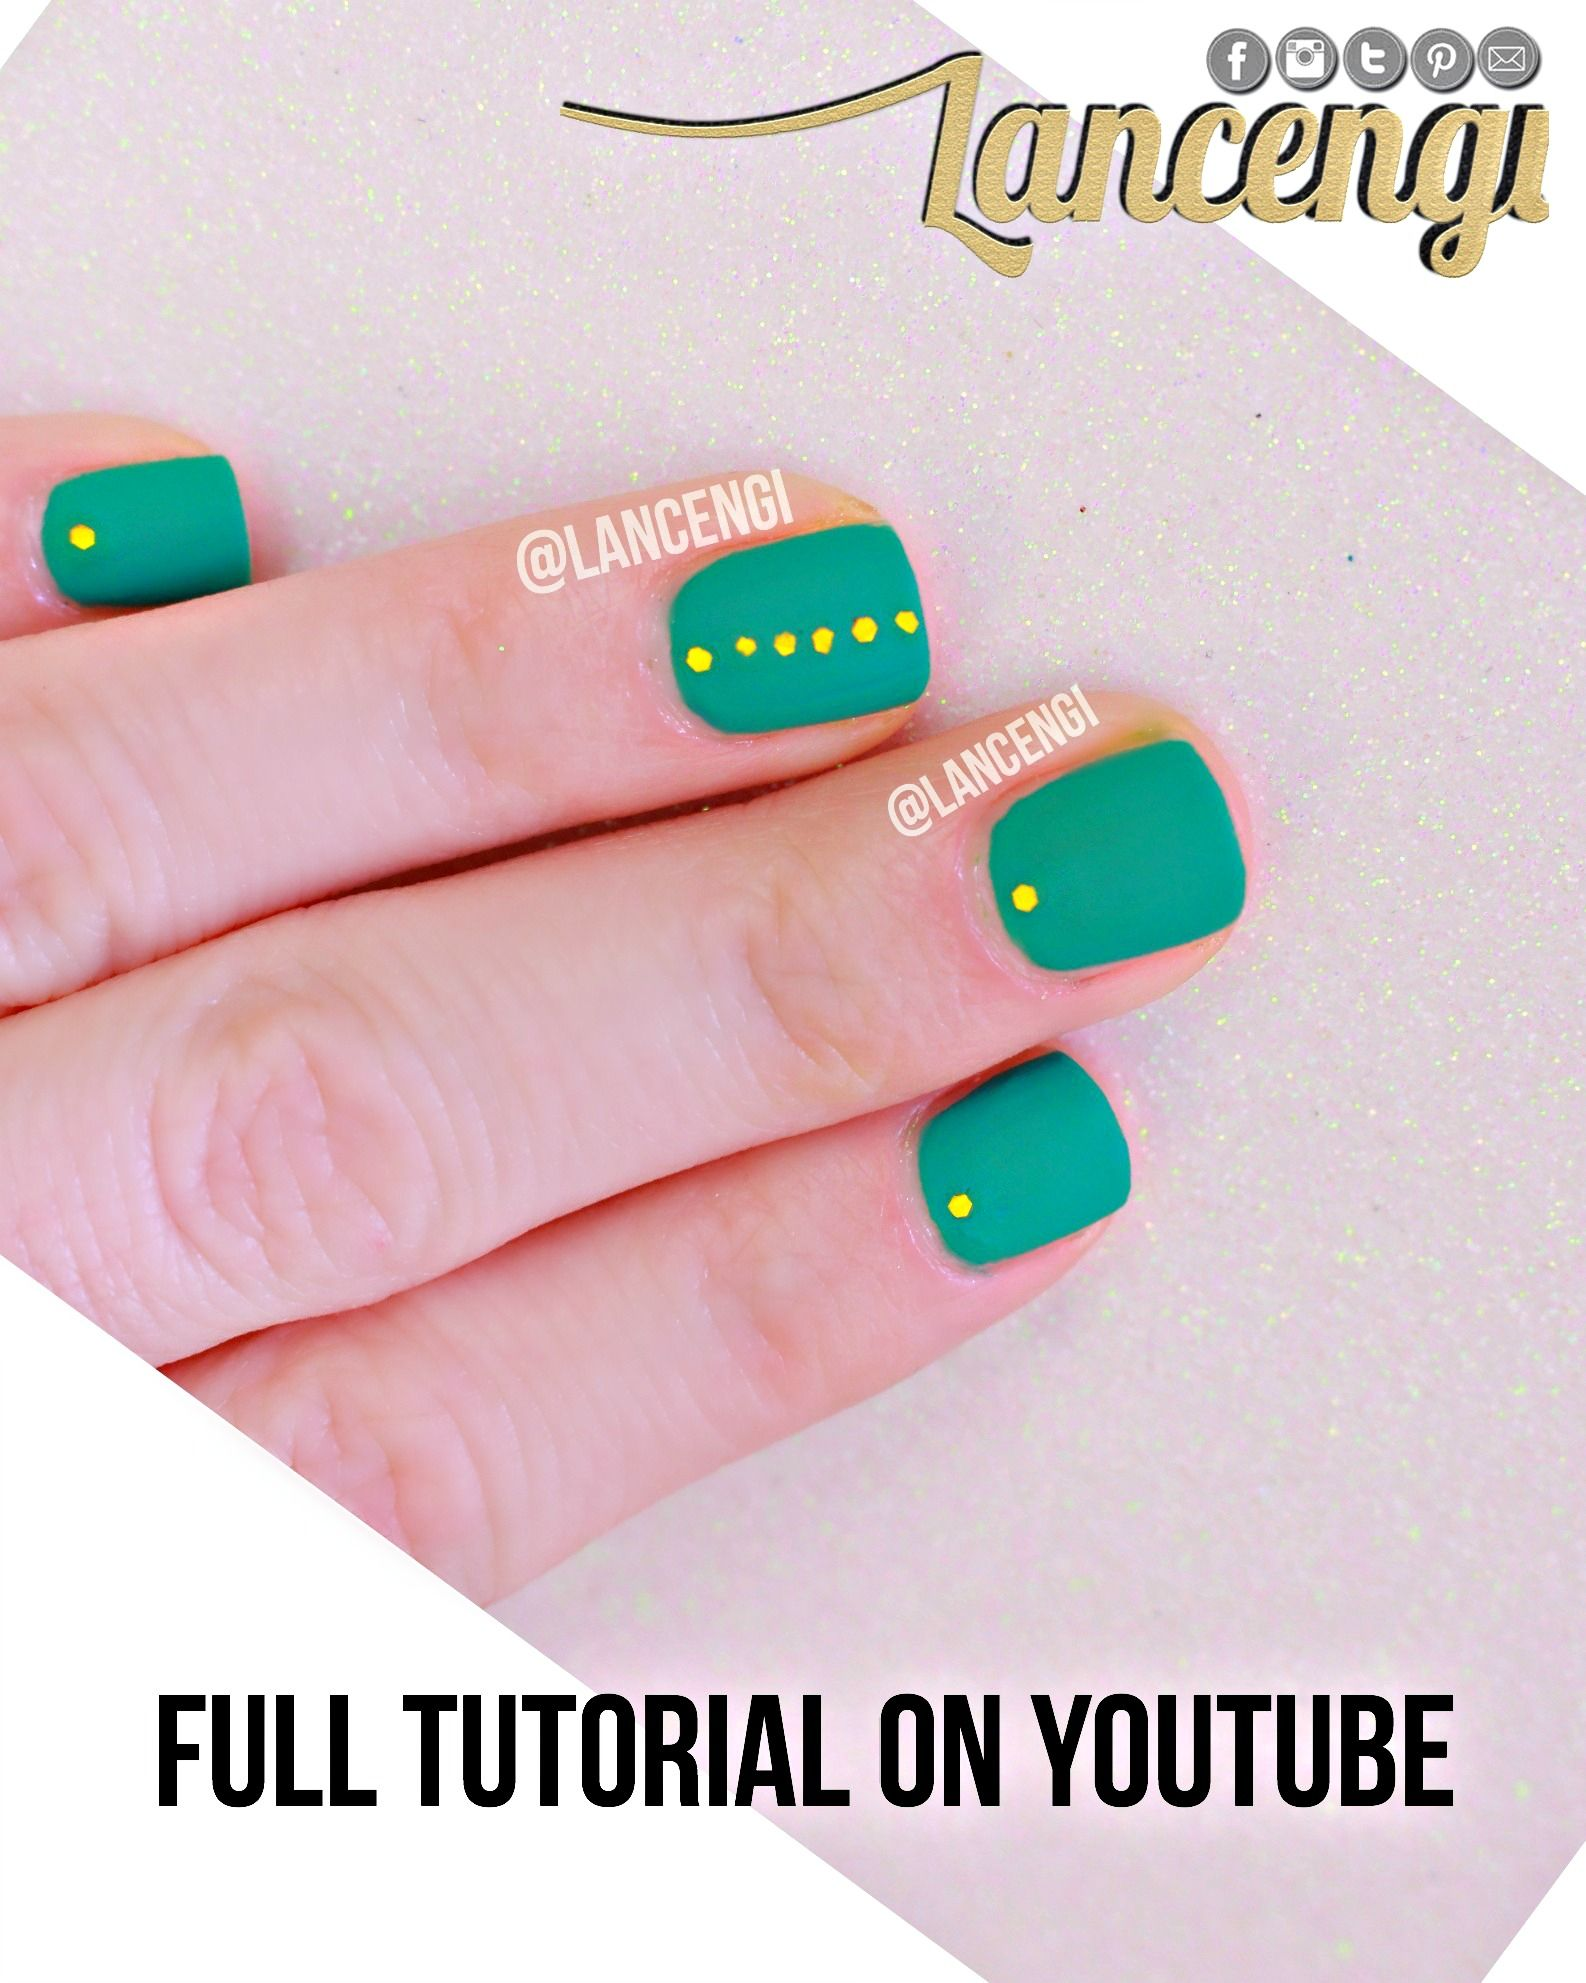 Easy Nail Art For Beginners with Short Nails: Green and Gold Glitter ...